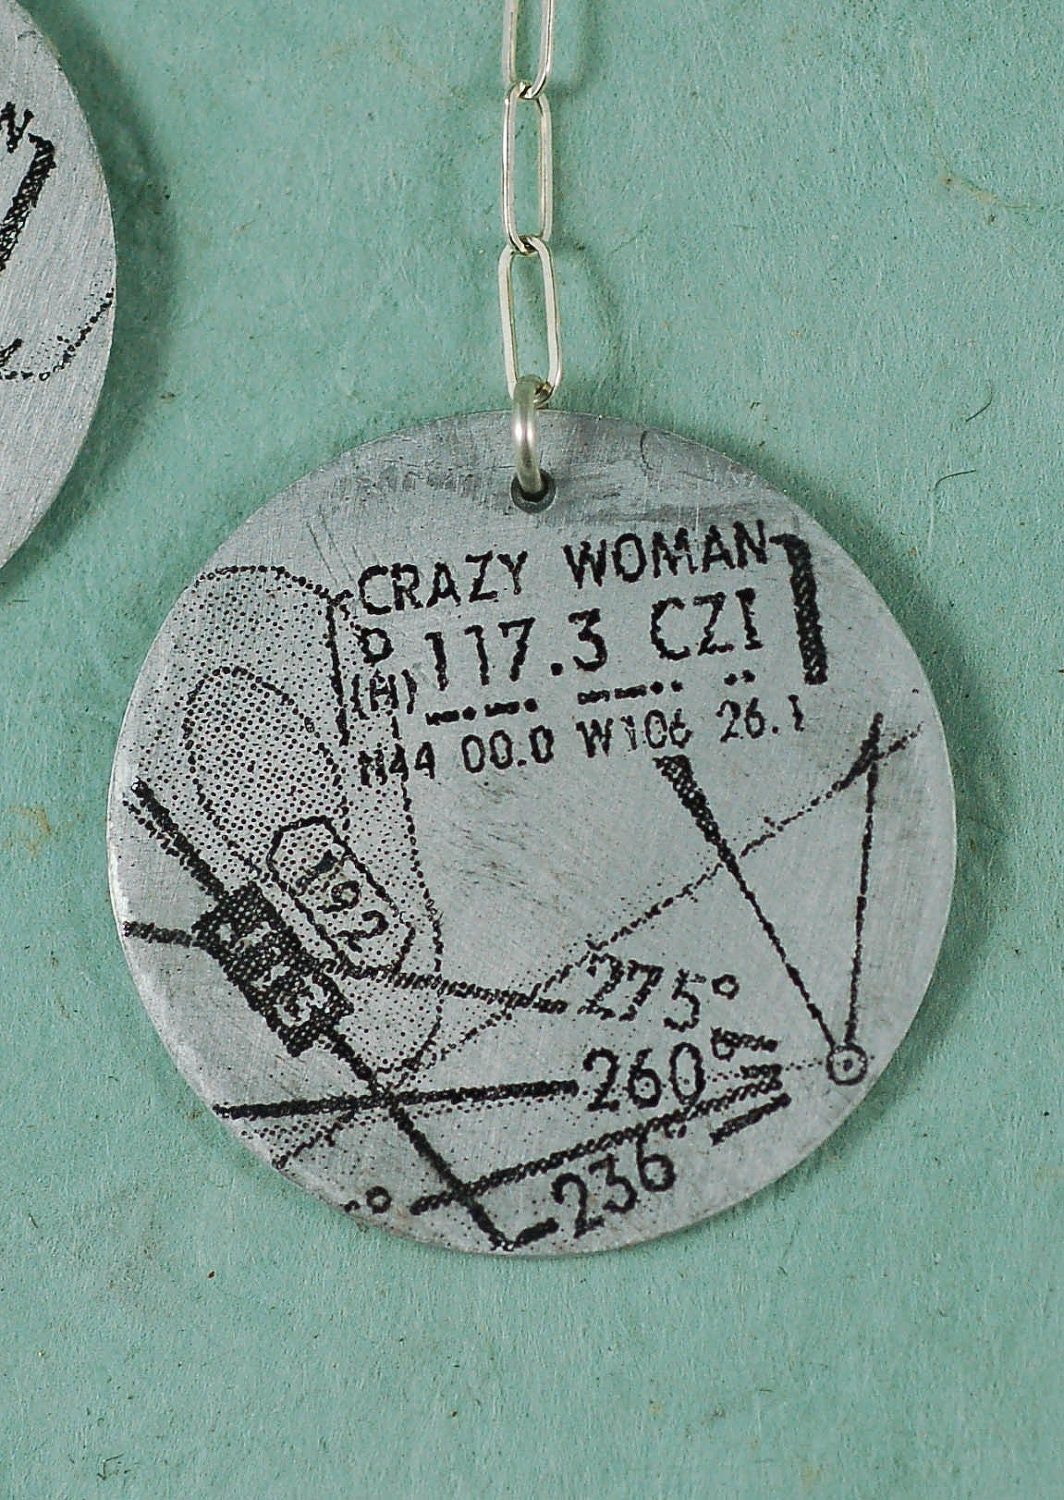 Aviation Sectional Earrings Crazy Woman by SidecarSisterDesigns